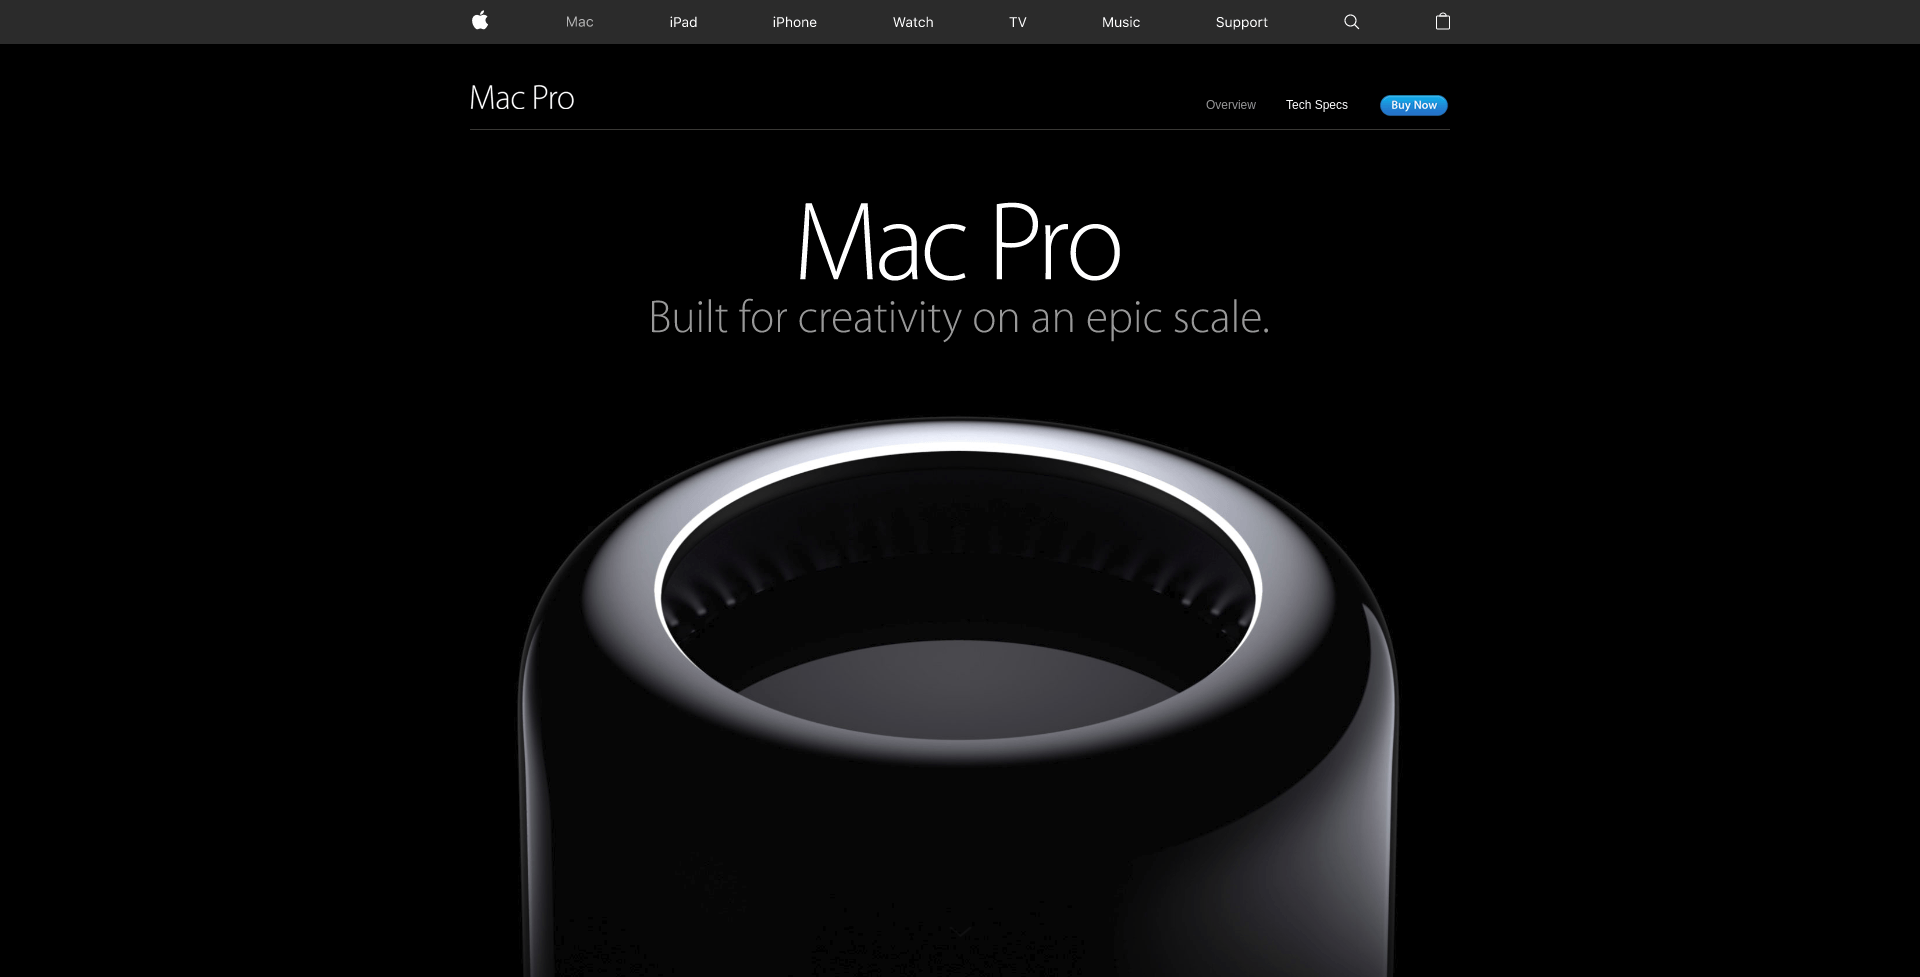 Black background design example - Mac Pro web presentation